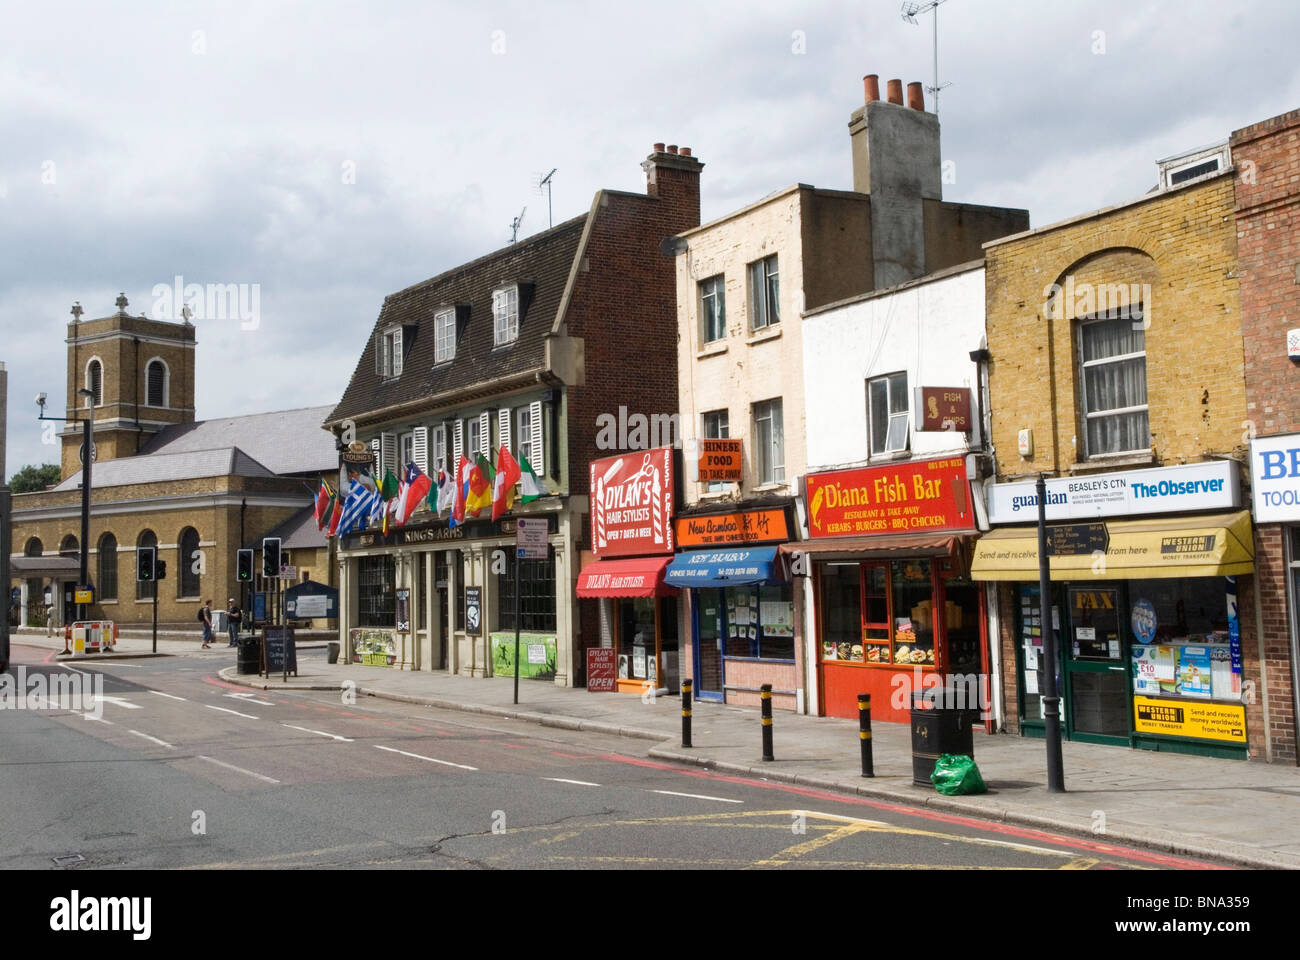 Wandsworth high Street , 'Kings Arms' pub pubic house,   All Saints church. South London UK HOMER SYKES - Stock Image